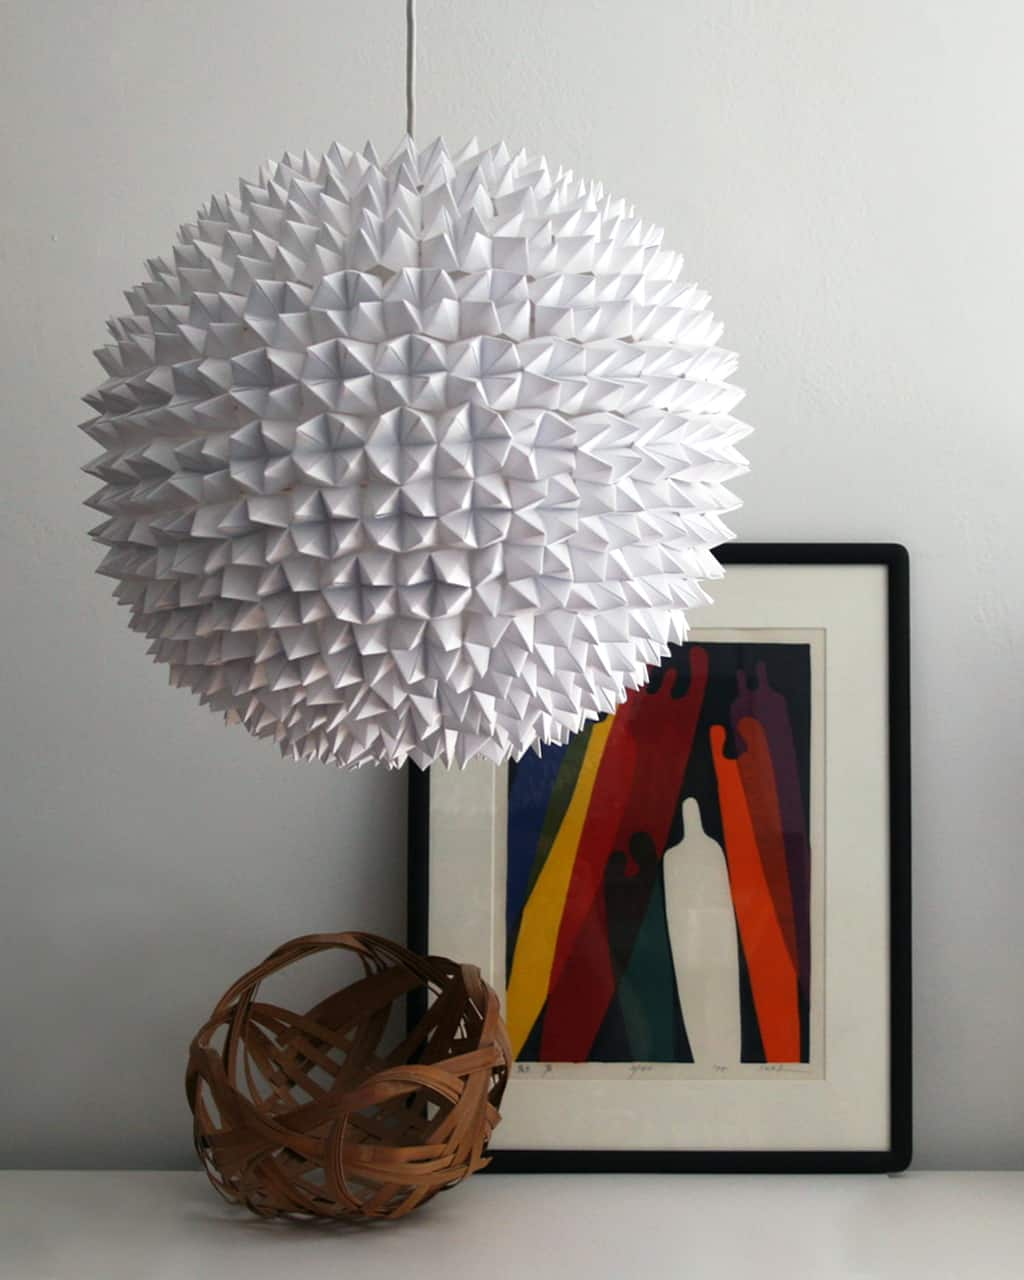 Large spherical faceted pendant lights